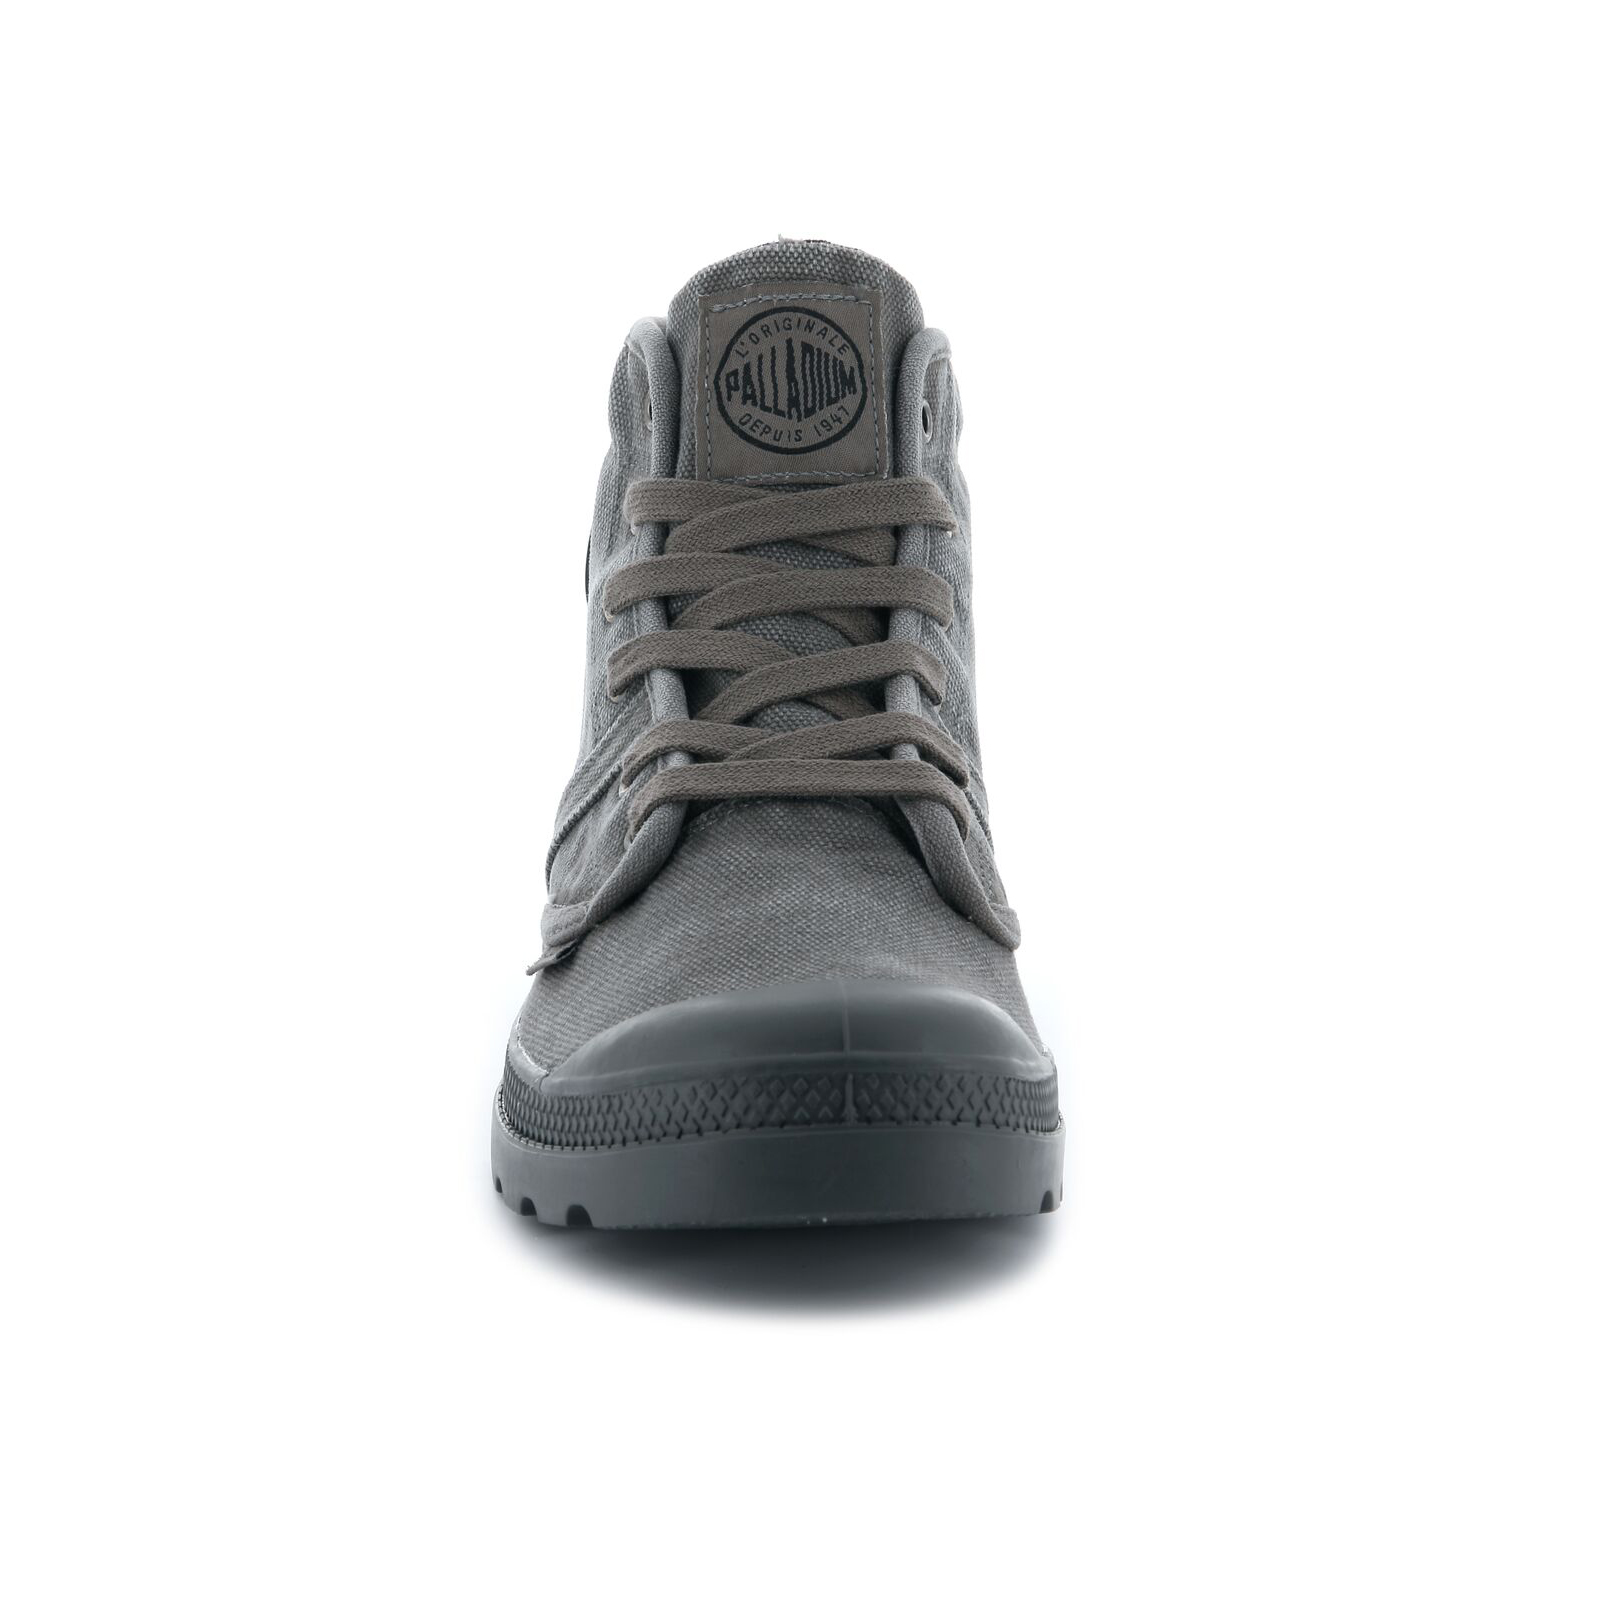 Palladium-Mens-Shoe-Pallabrouse-New-Designer-Walking-High-Top-Canvas-Ankle-Boots thumbnail 15